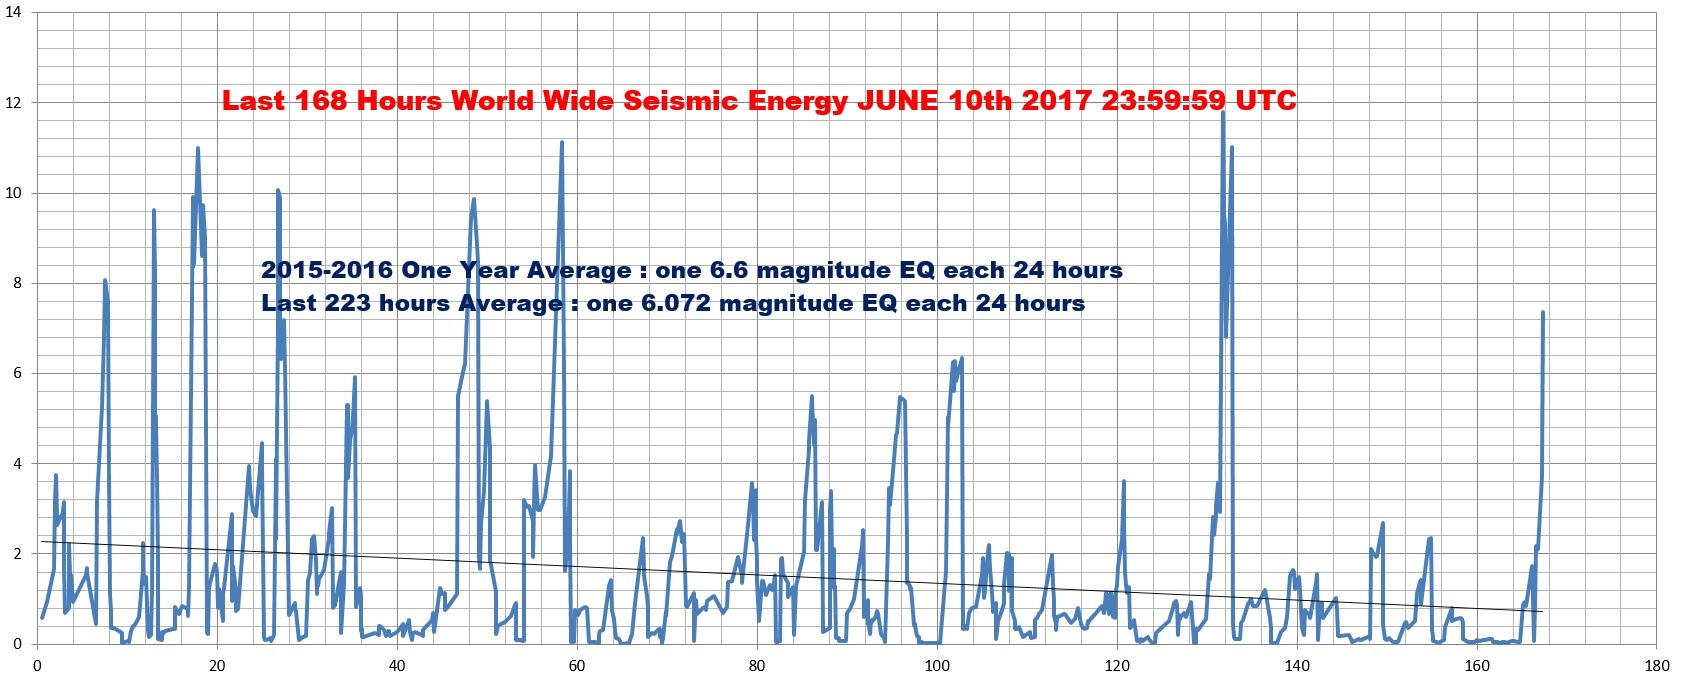 Week%2001%20World%20Seismic%20Energy.jpg